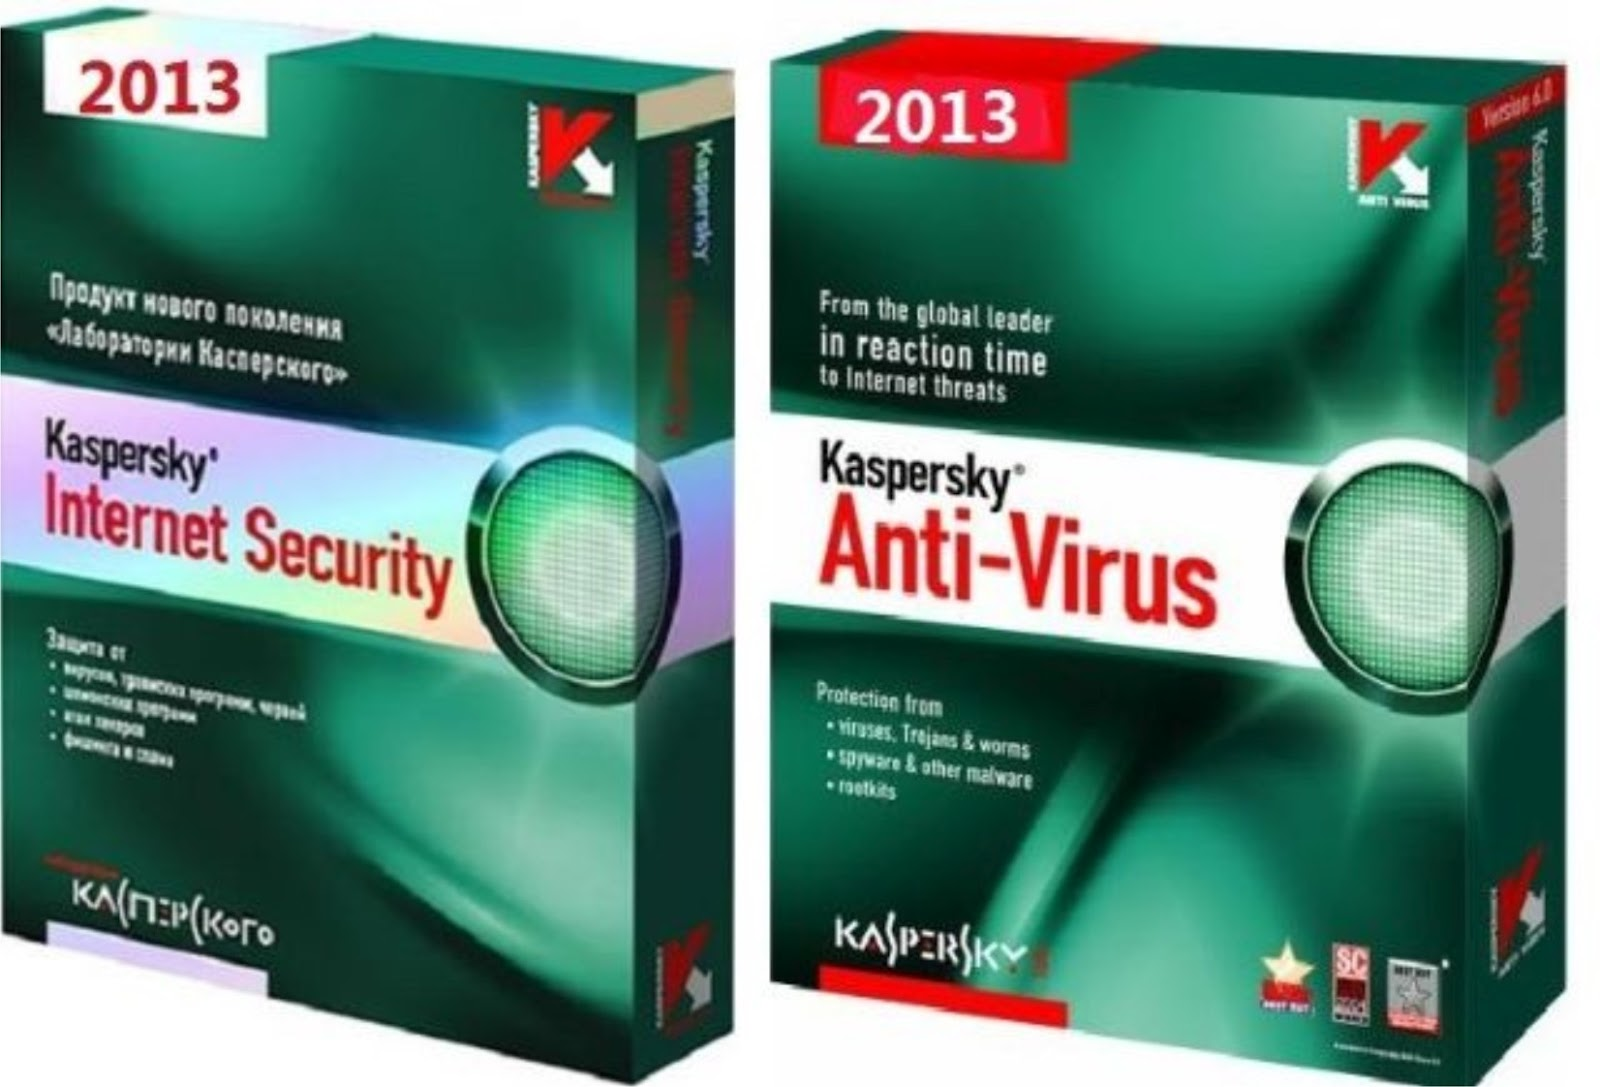 Download Kaspersky Anti-Virus 2013 13.0.1.4190 Final - PC Software